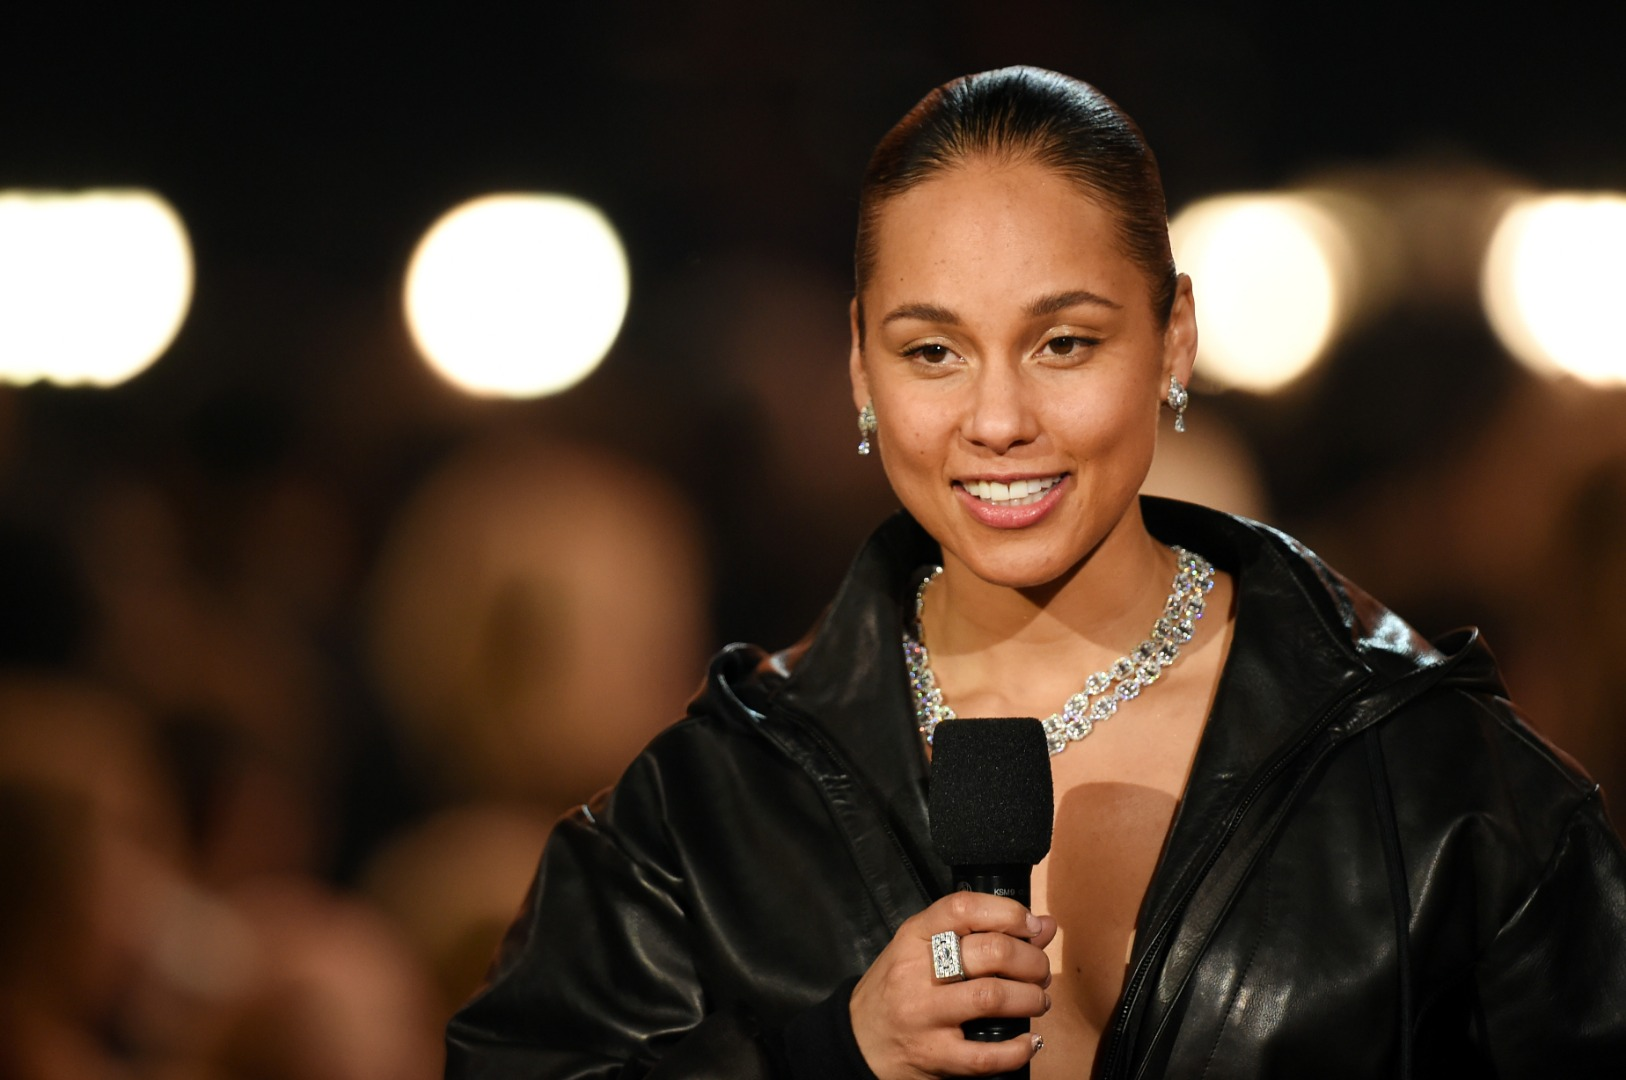 Grammy Awards 2019: Alicia Keys